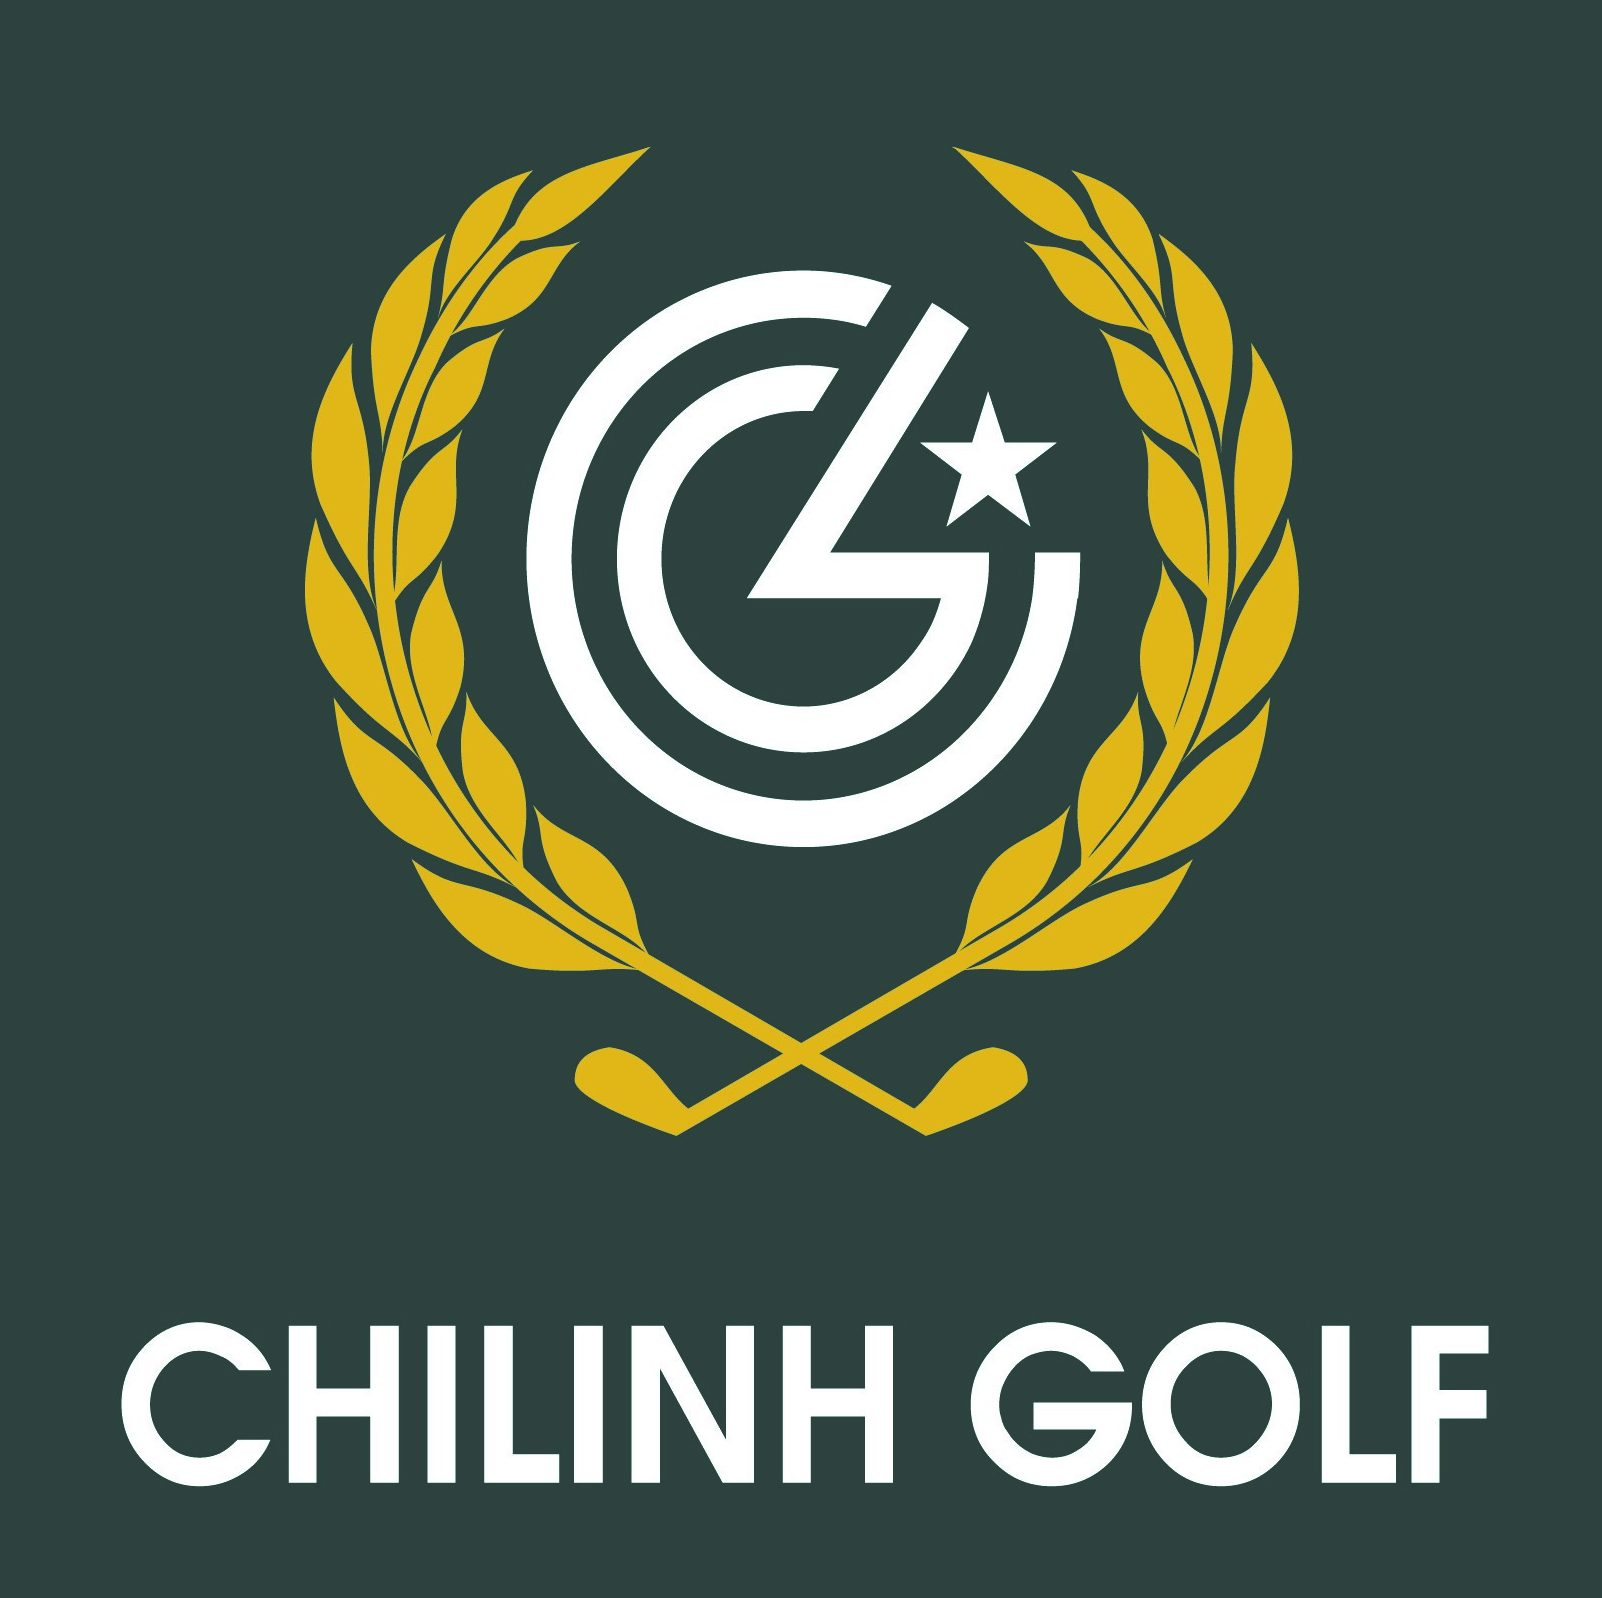 CHILINH GOLF